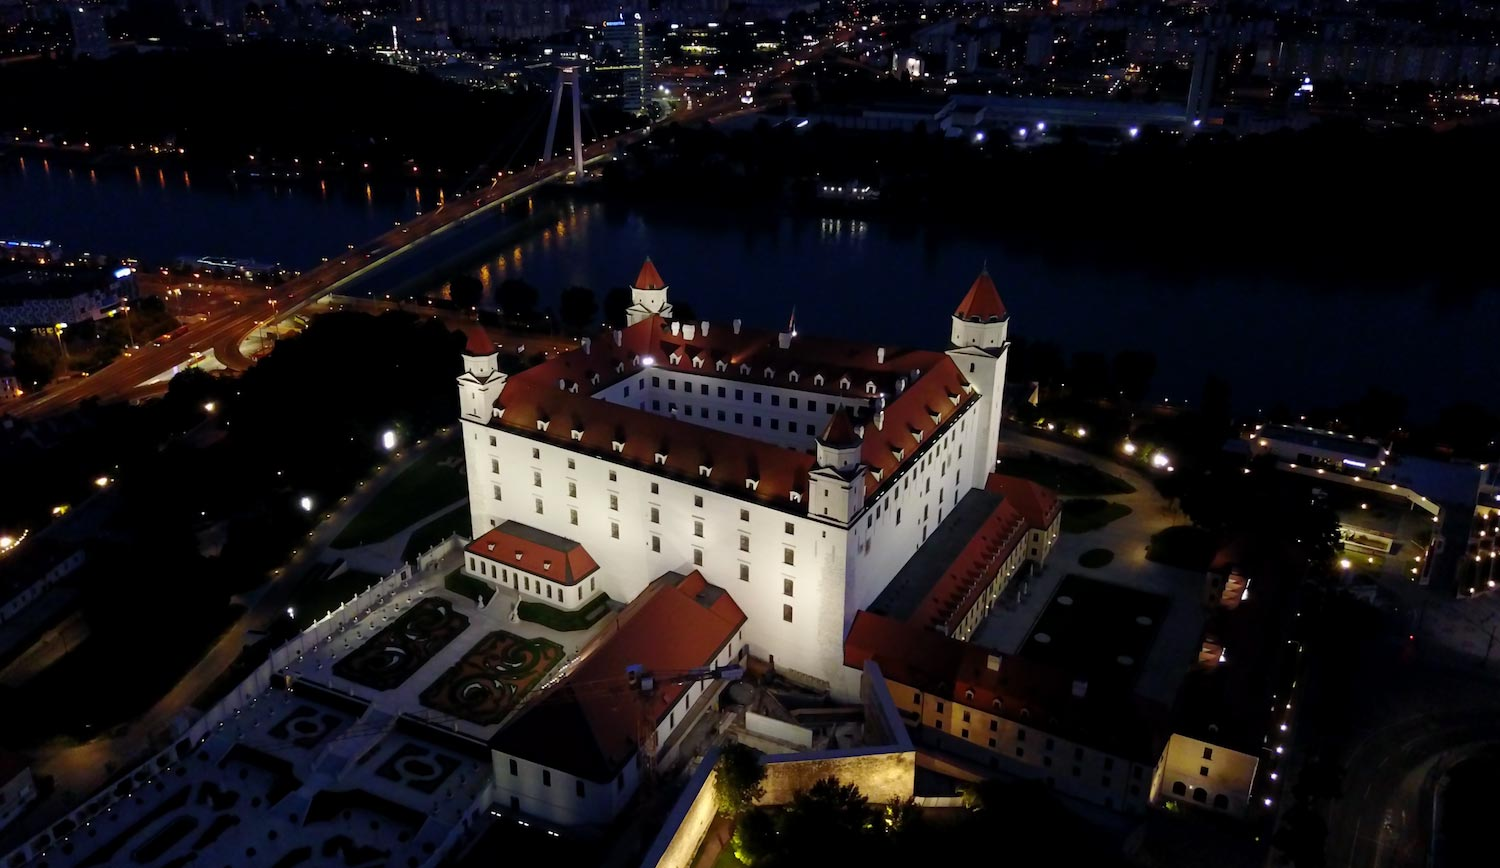 Bratislava Castle at night - taken with the DJI Mavic Pro